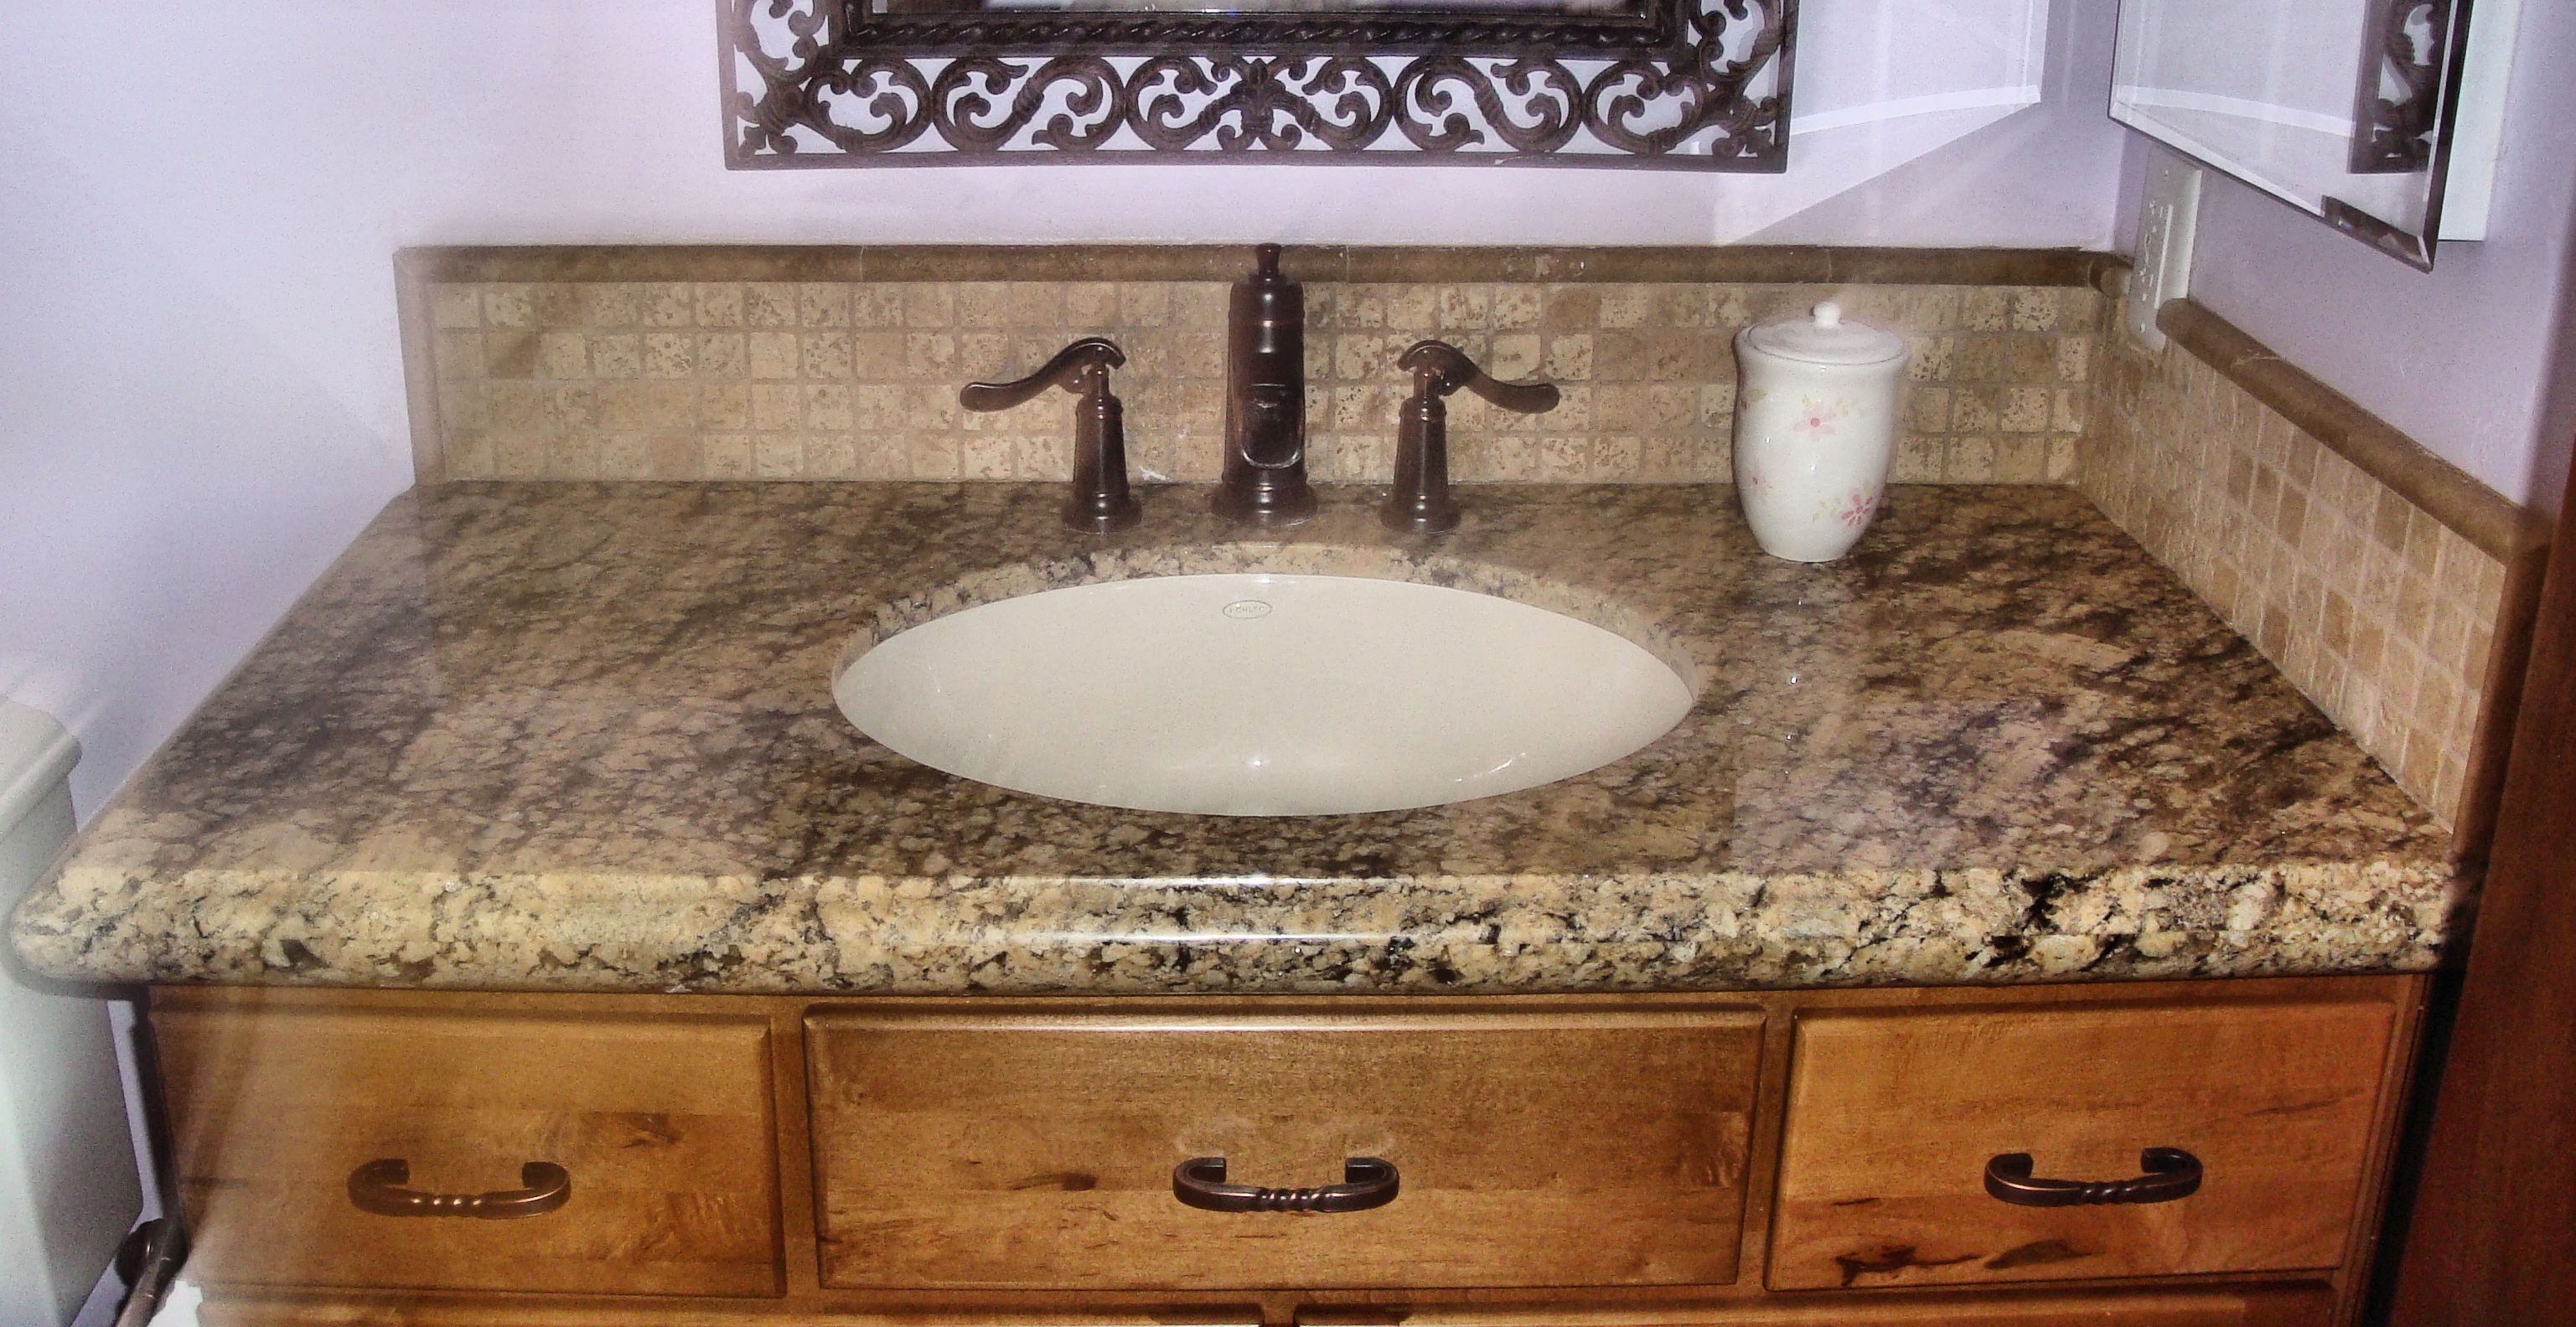 Granite bathroom Countertops | Beige Granite Bathroom Countertop ...